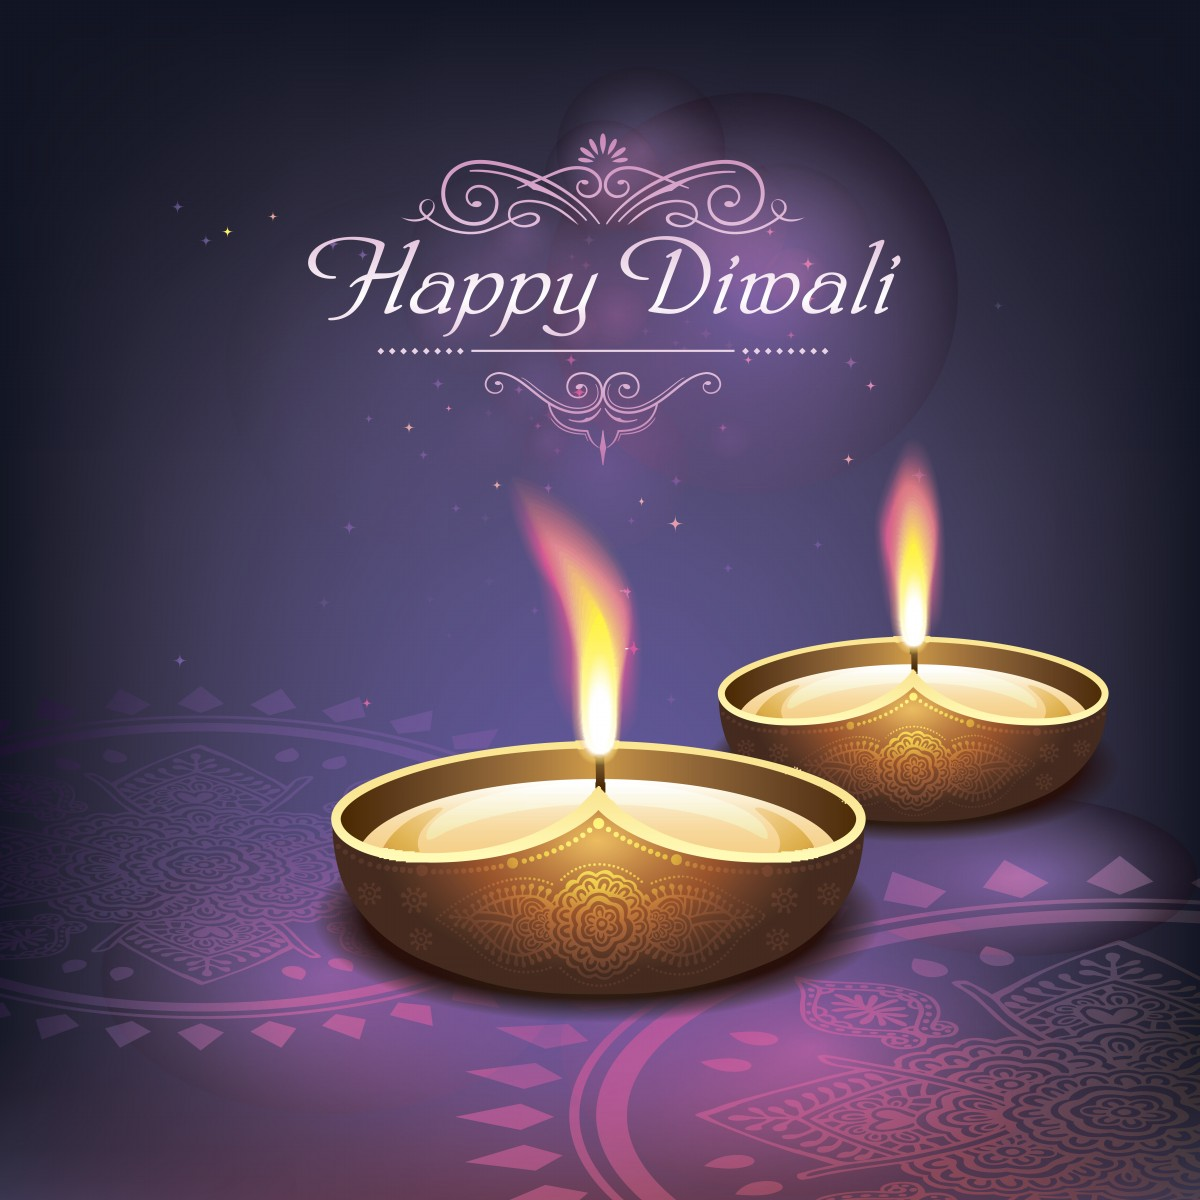 diwali Images Photos 2015